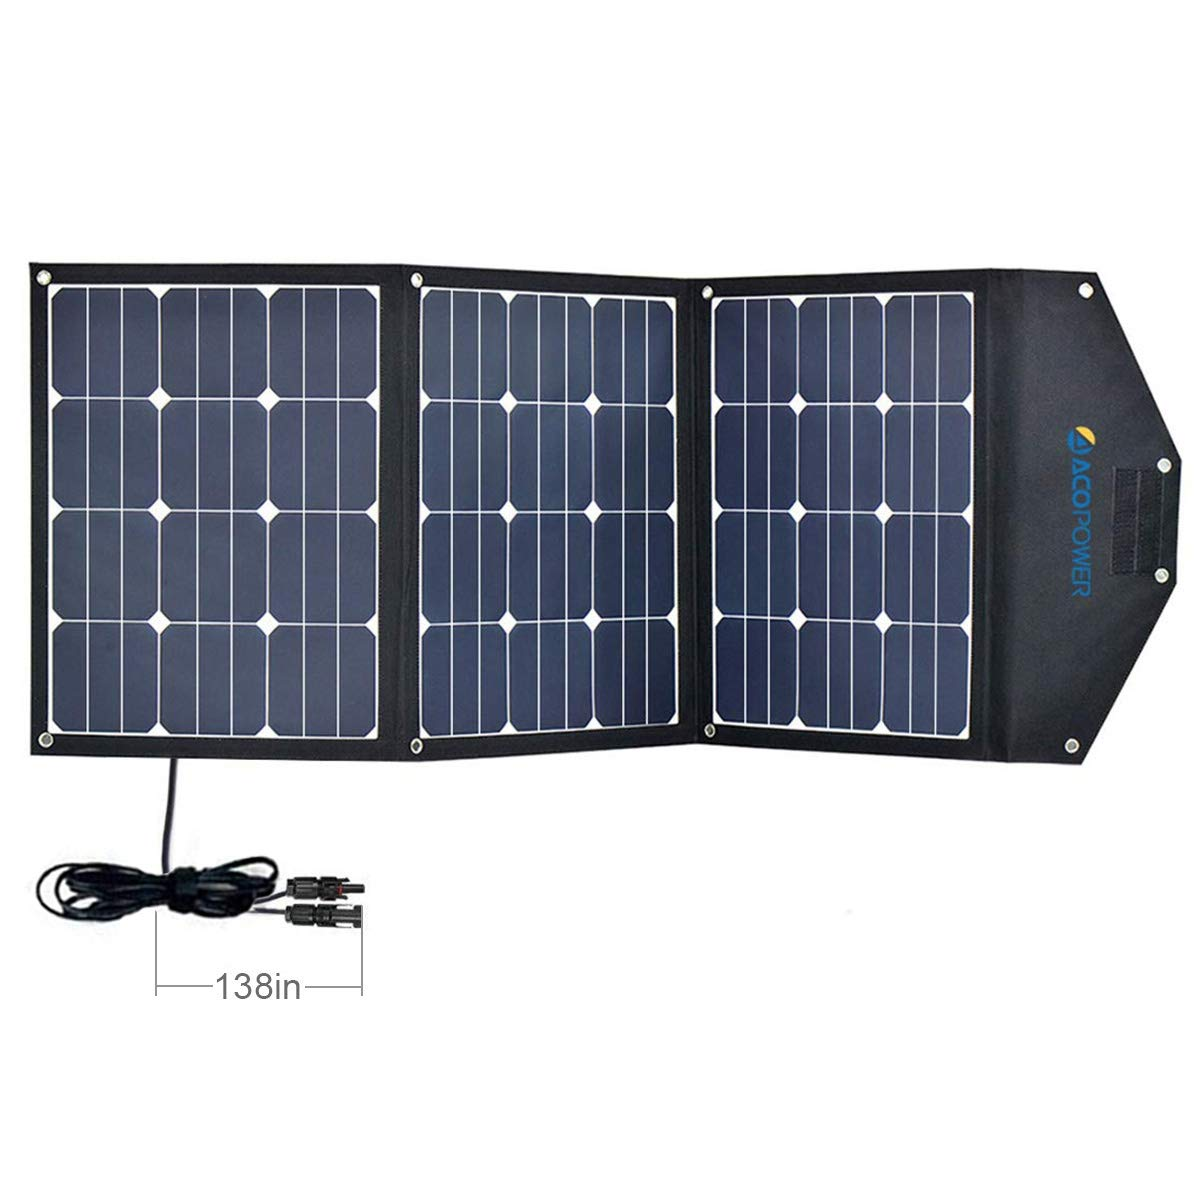 ACOPOWER 120W Portable Solar Panel 3x40W Foldable Suitcase ... by ACOPOWER